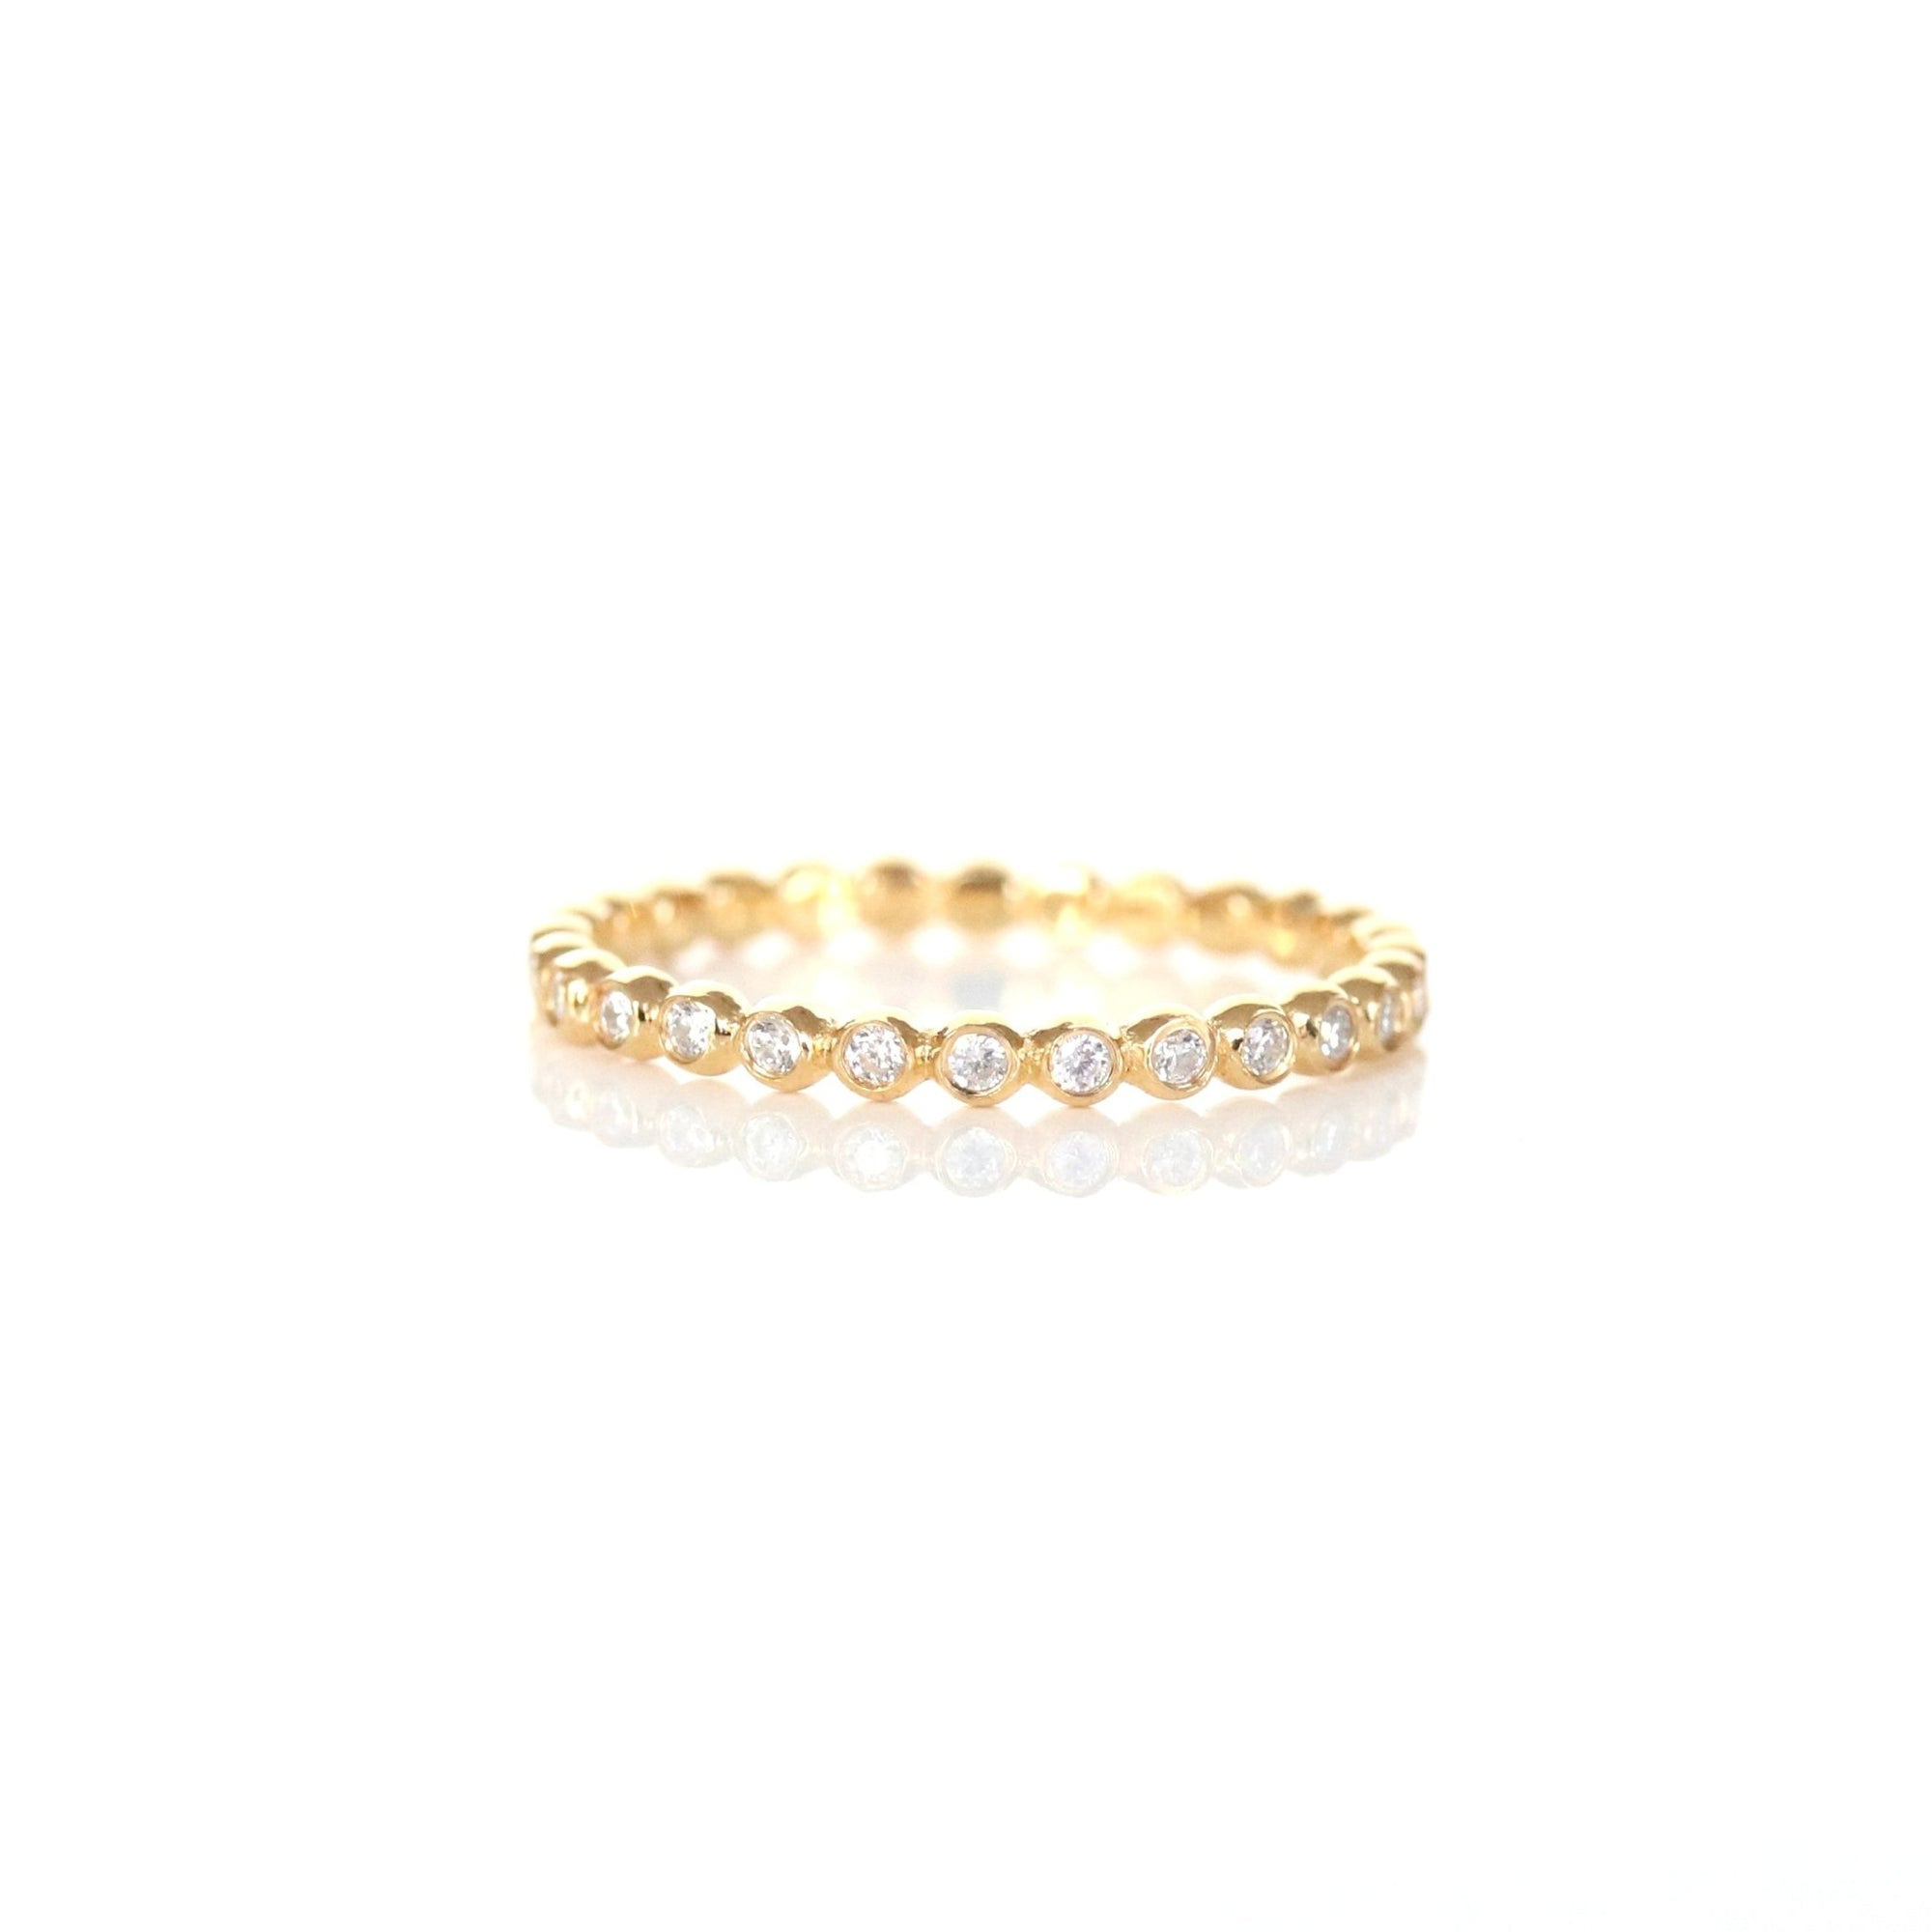 LOVE THIN DISK BAND RING - GOLD - SO PRETTY CARA COTTER